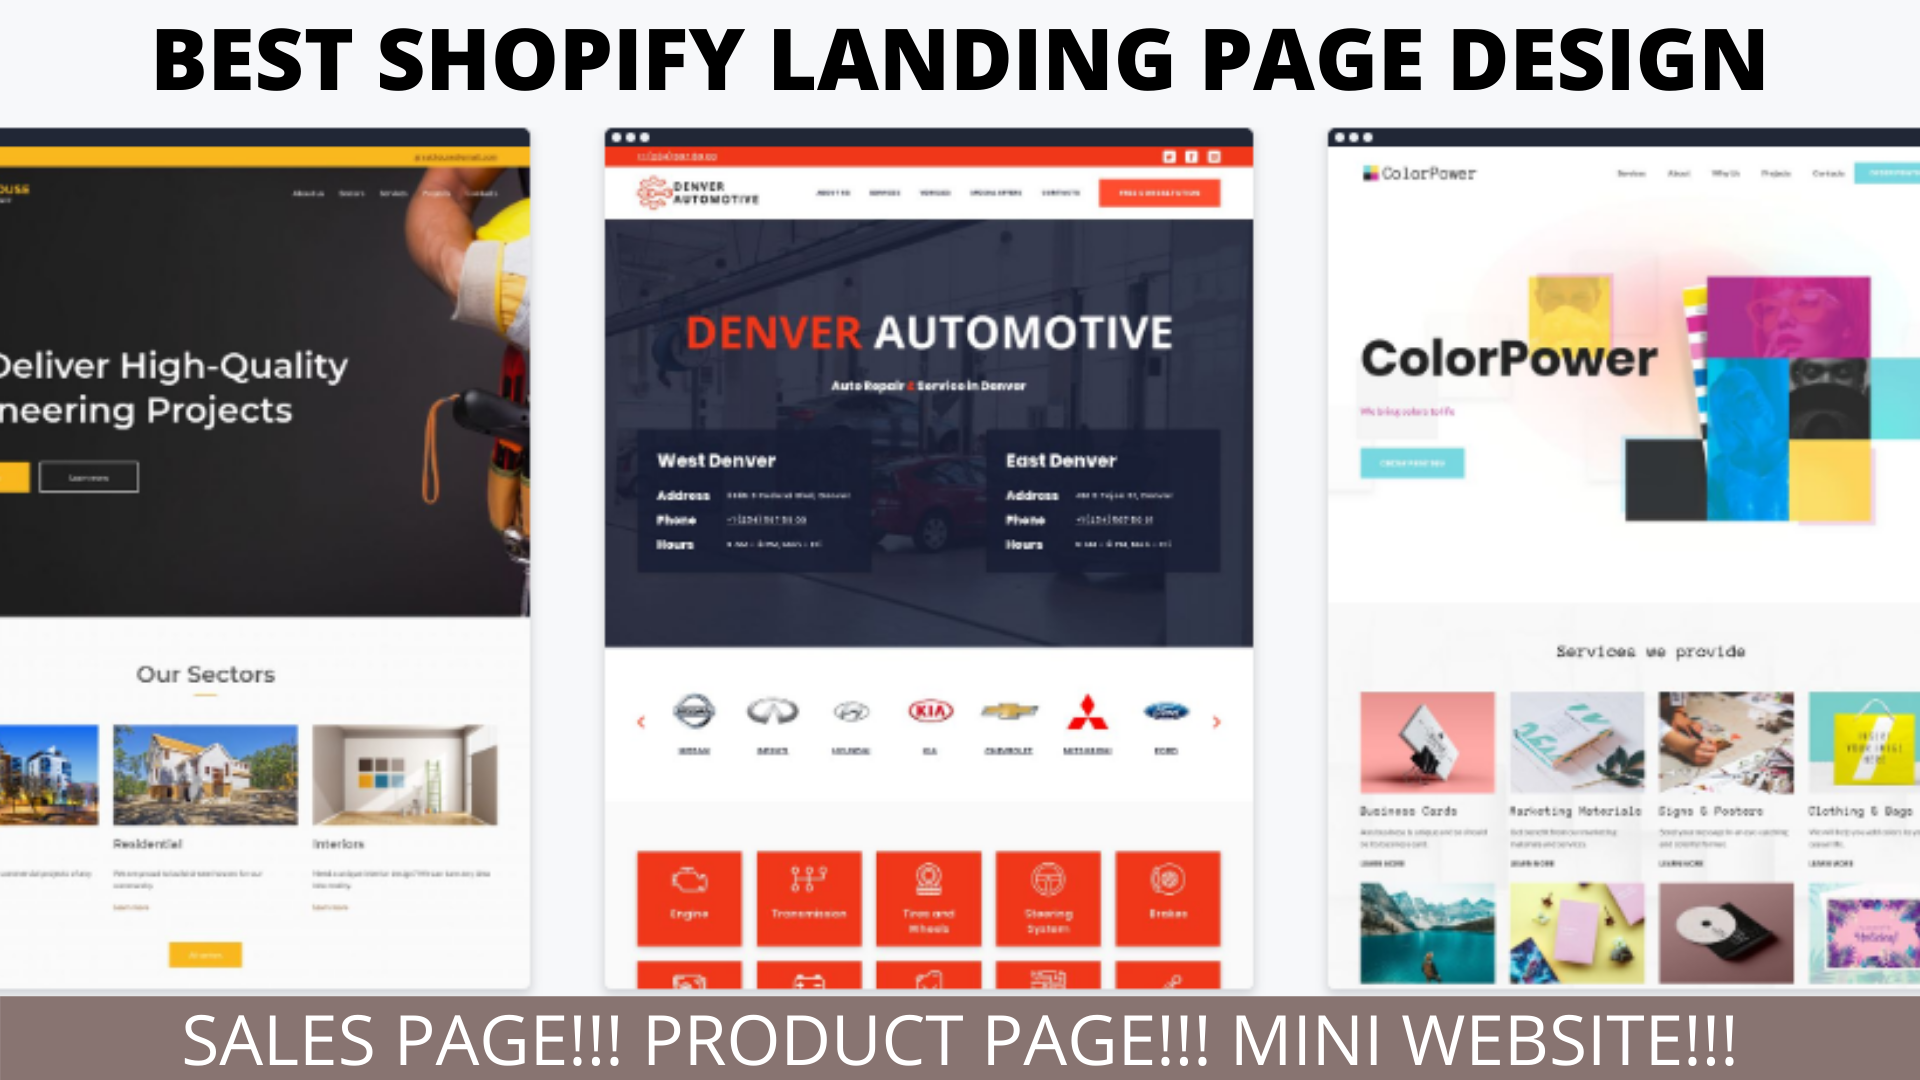 Design high compelling shopify and getresponse landing page, FiverrBox